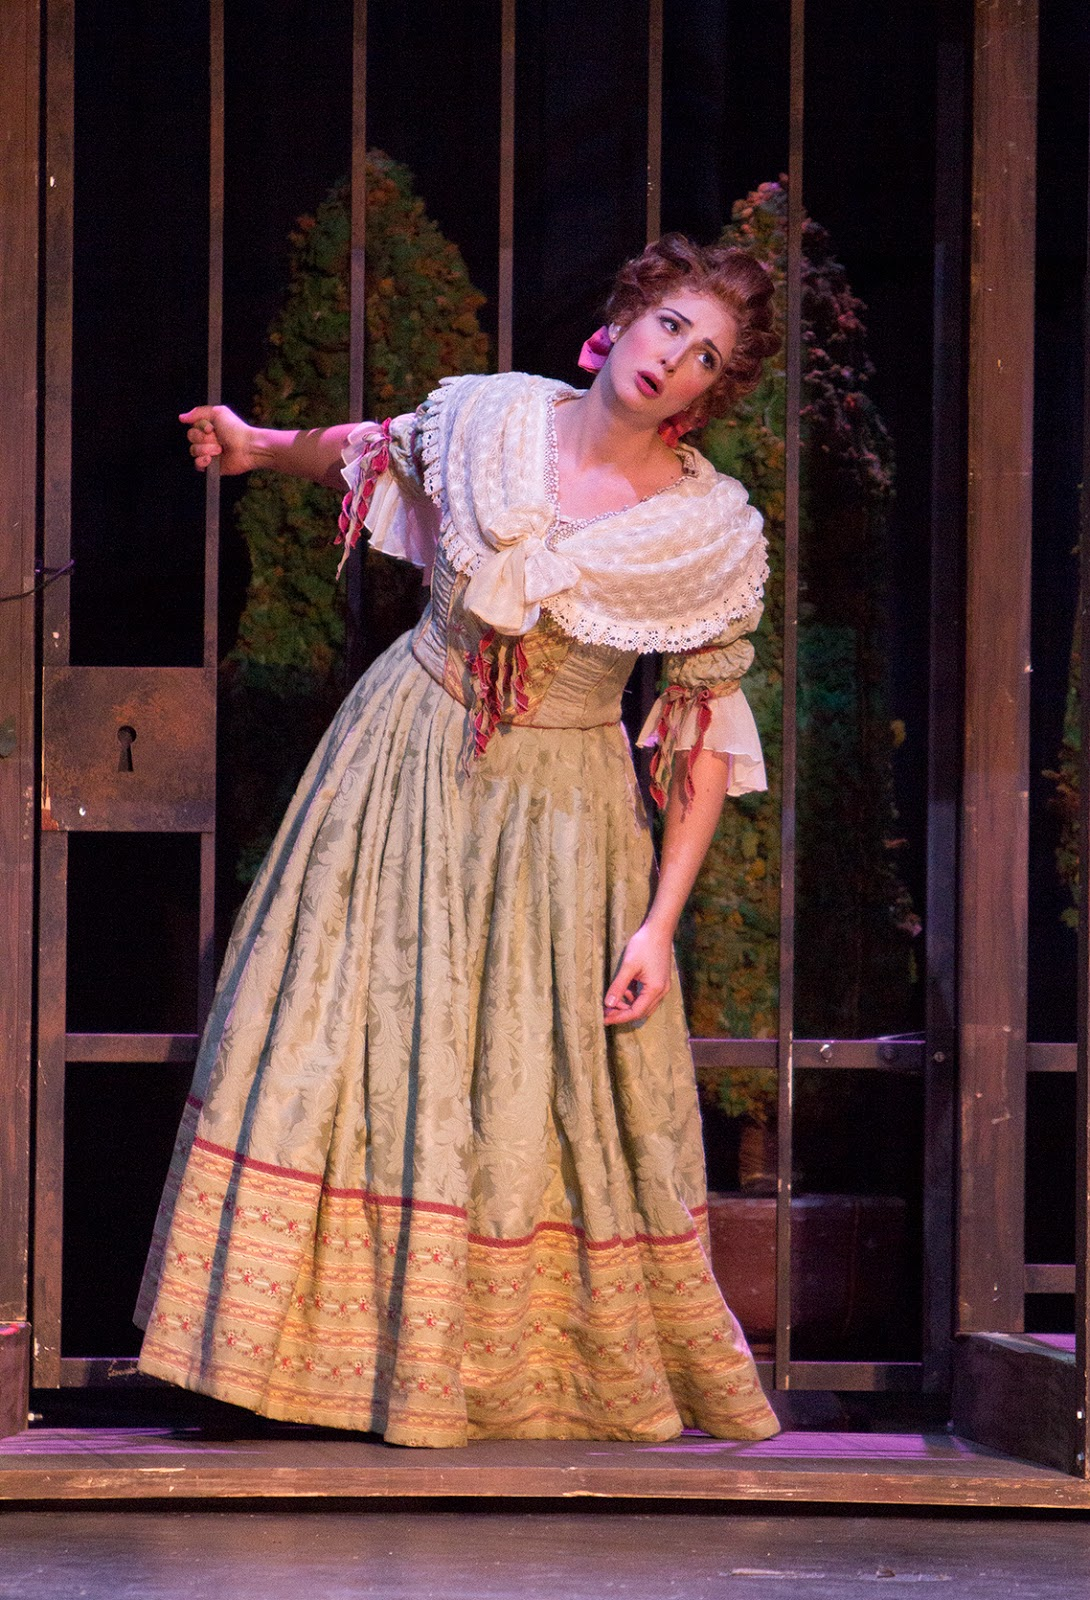 IN PERFORMANCE: mezzo-soprano CECELIA HALL as Rosina in Greensboro Opera's production of Gioachino Rossini's IL BARBIERE DI SIVIGLIA, January 2018 [Photo by Star Path Images, © by Greensboro Opera]